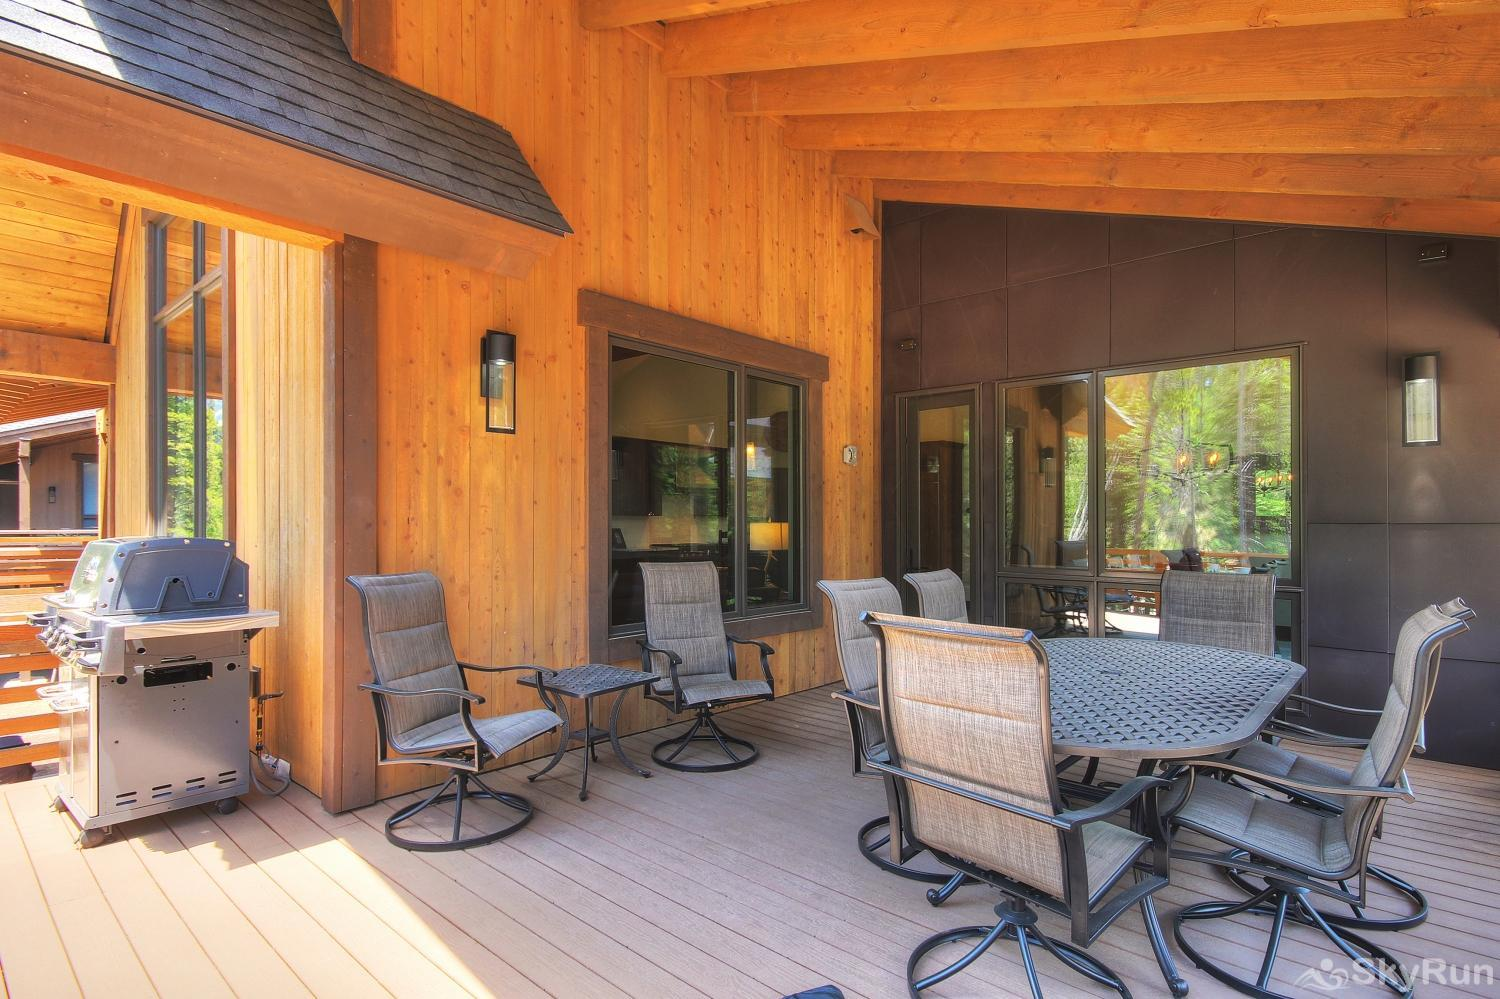 River's Edge Retreat Dine outside with family on your private deck